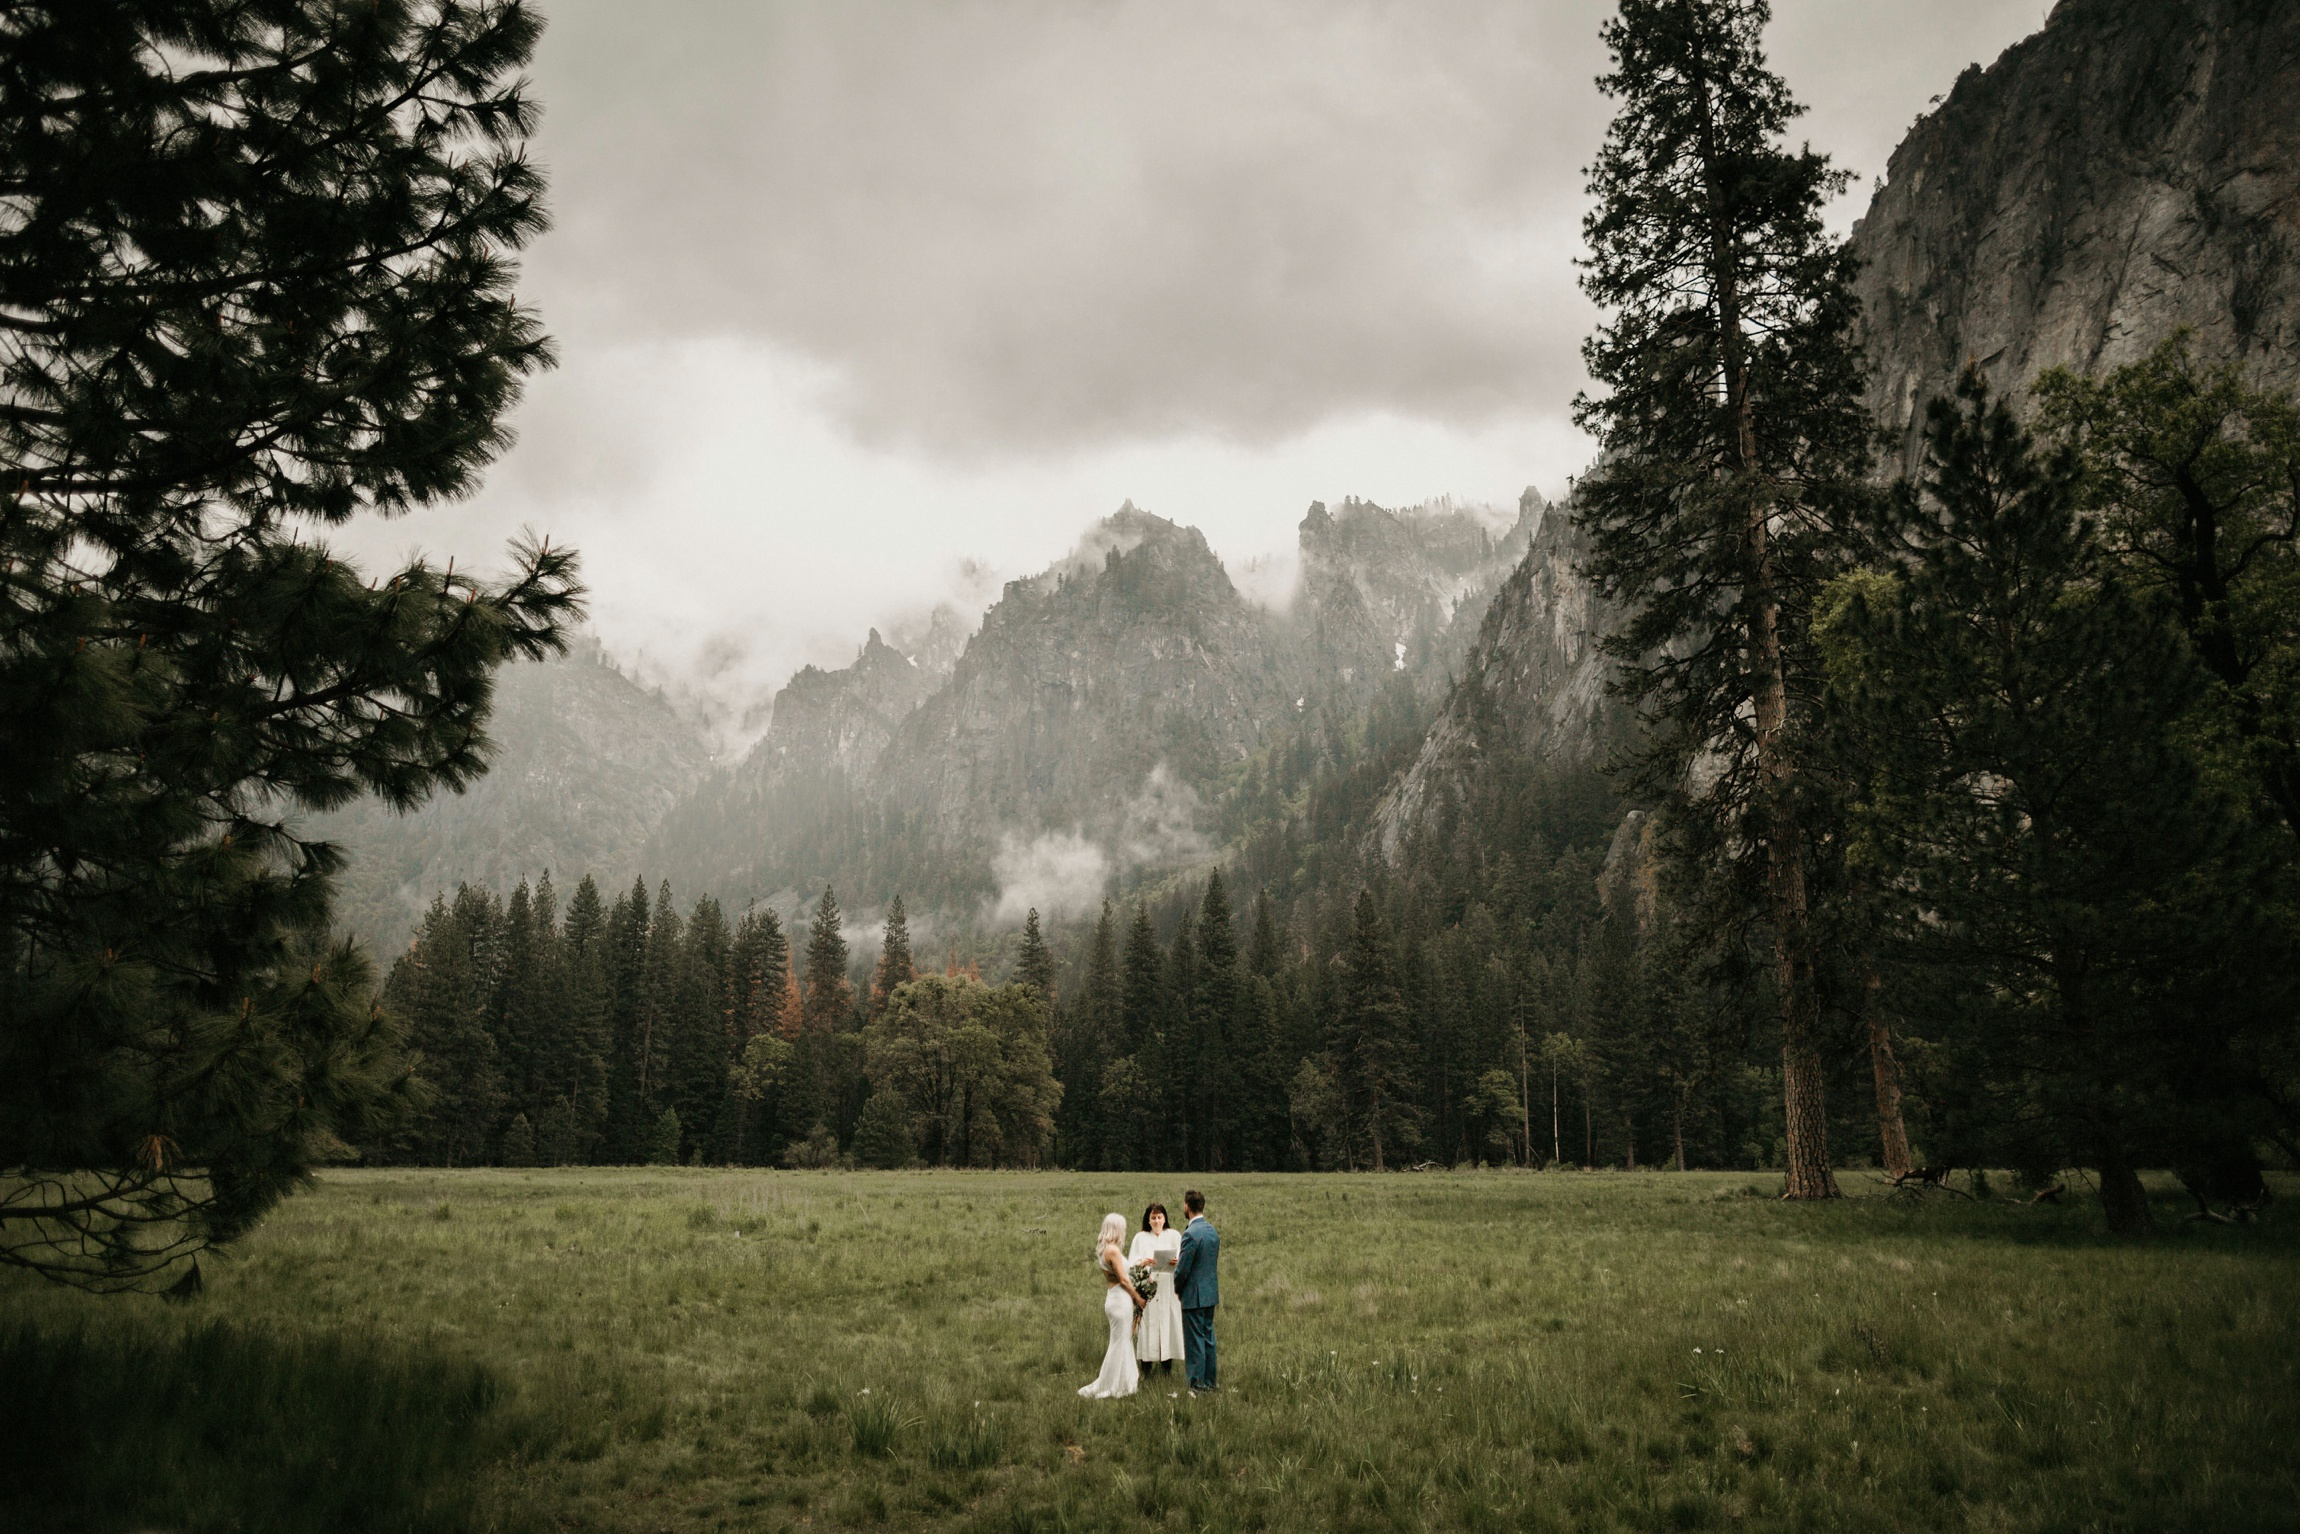 El Capitan Meadow Yosemite Elopement